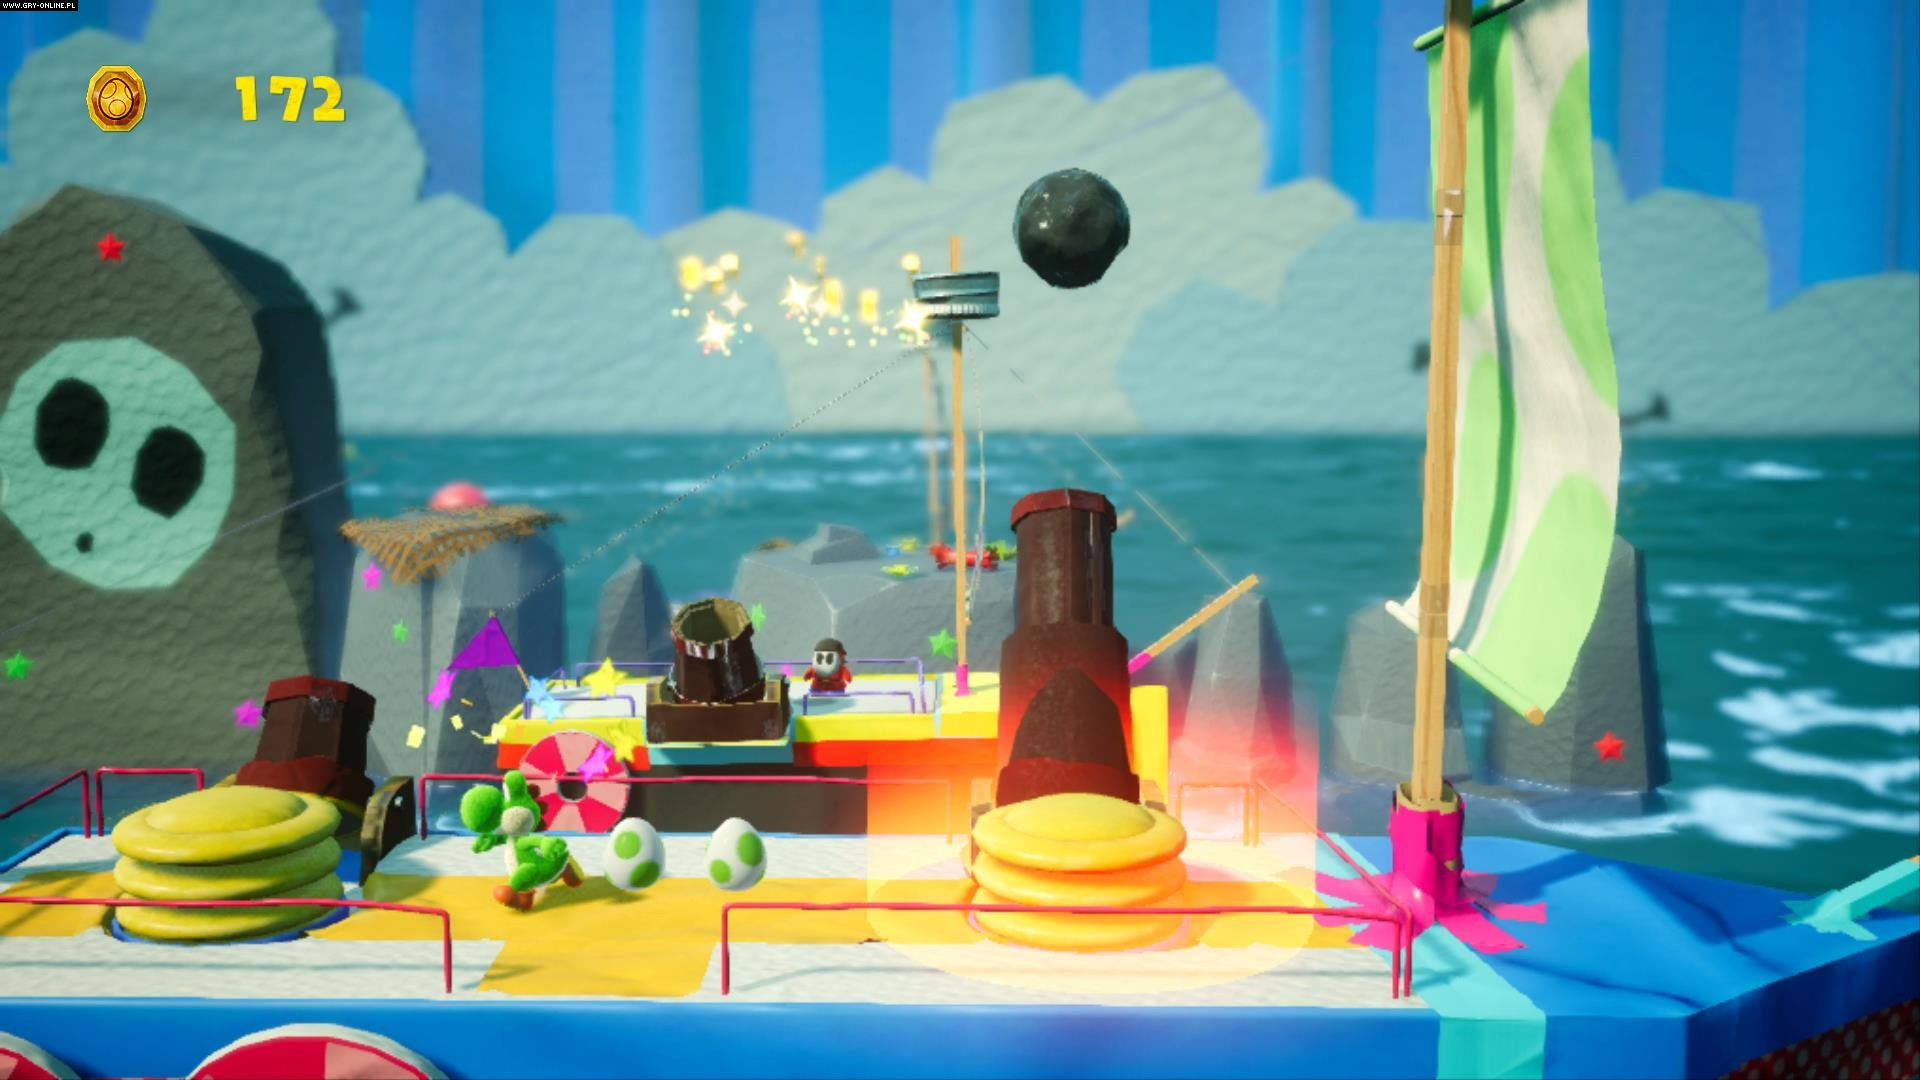 Yoshi's Crafted World Switch Gry Screen 21/24, Good-Feel, Nintendo